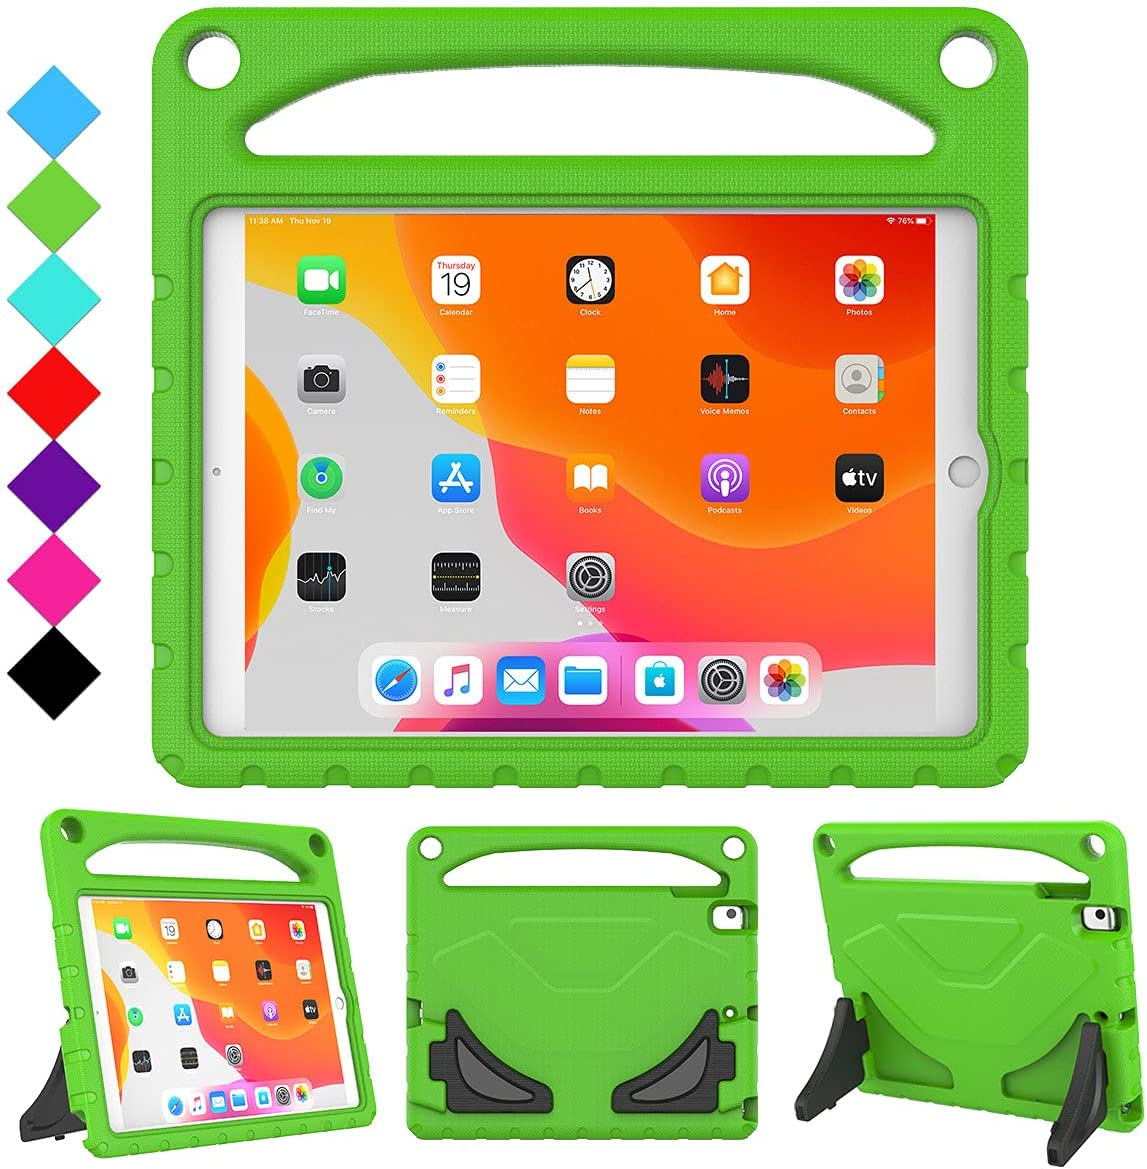 RTOBX iPad 8th Generation Case, iPad 7th Generation Case for Kids, Durable Shockproof Light Weight Handle Stand Protective Cover and Screen Protector for Apple iPad 10.2 2020/2019, Green